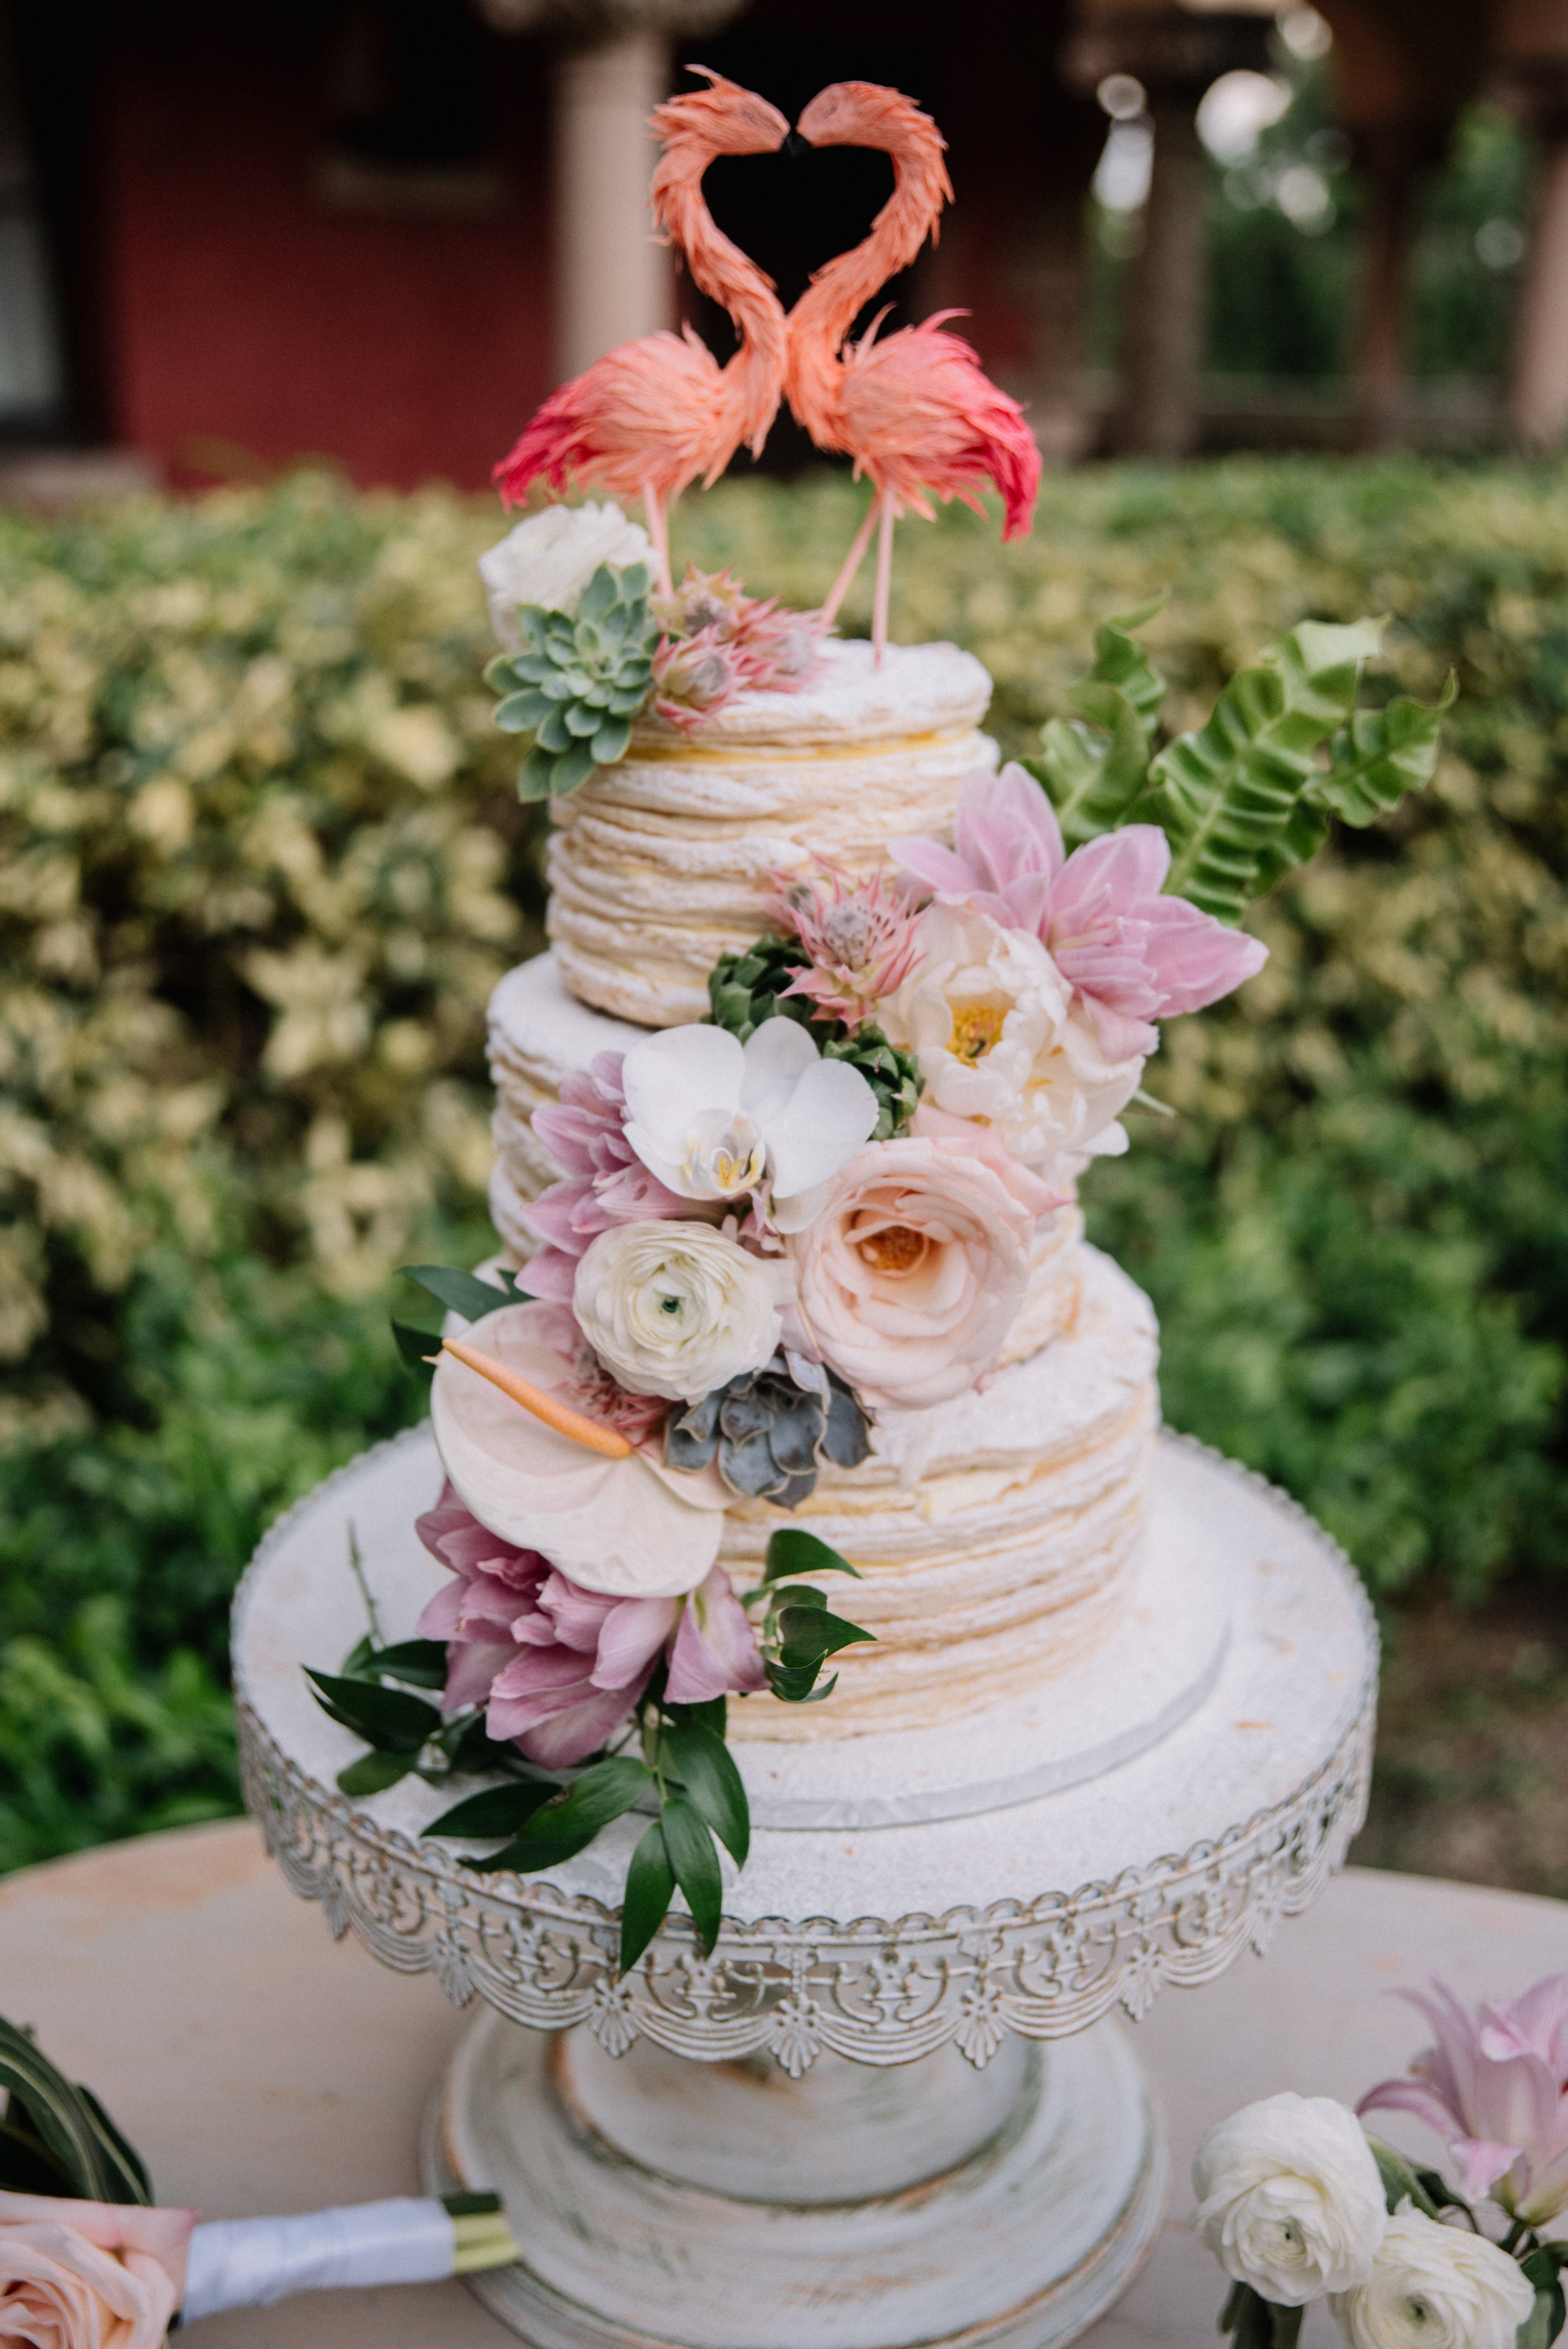 Cascading tropical wedding cake flowers in blush and white on naked cake with pink flamingo topper at  Deering Estate  in Miami